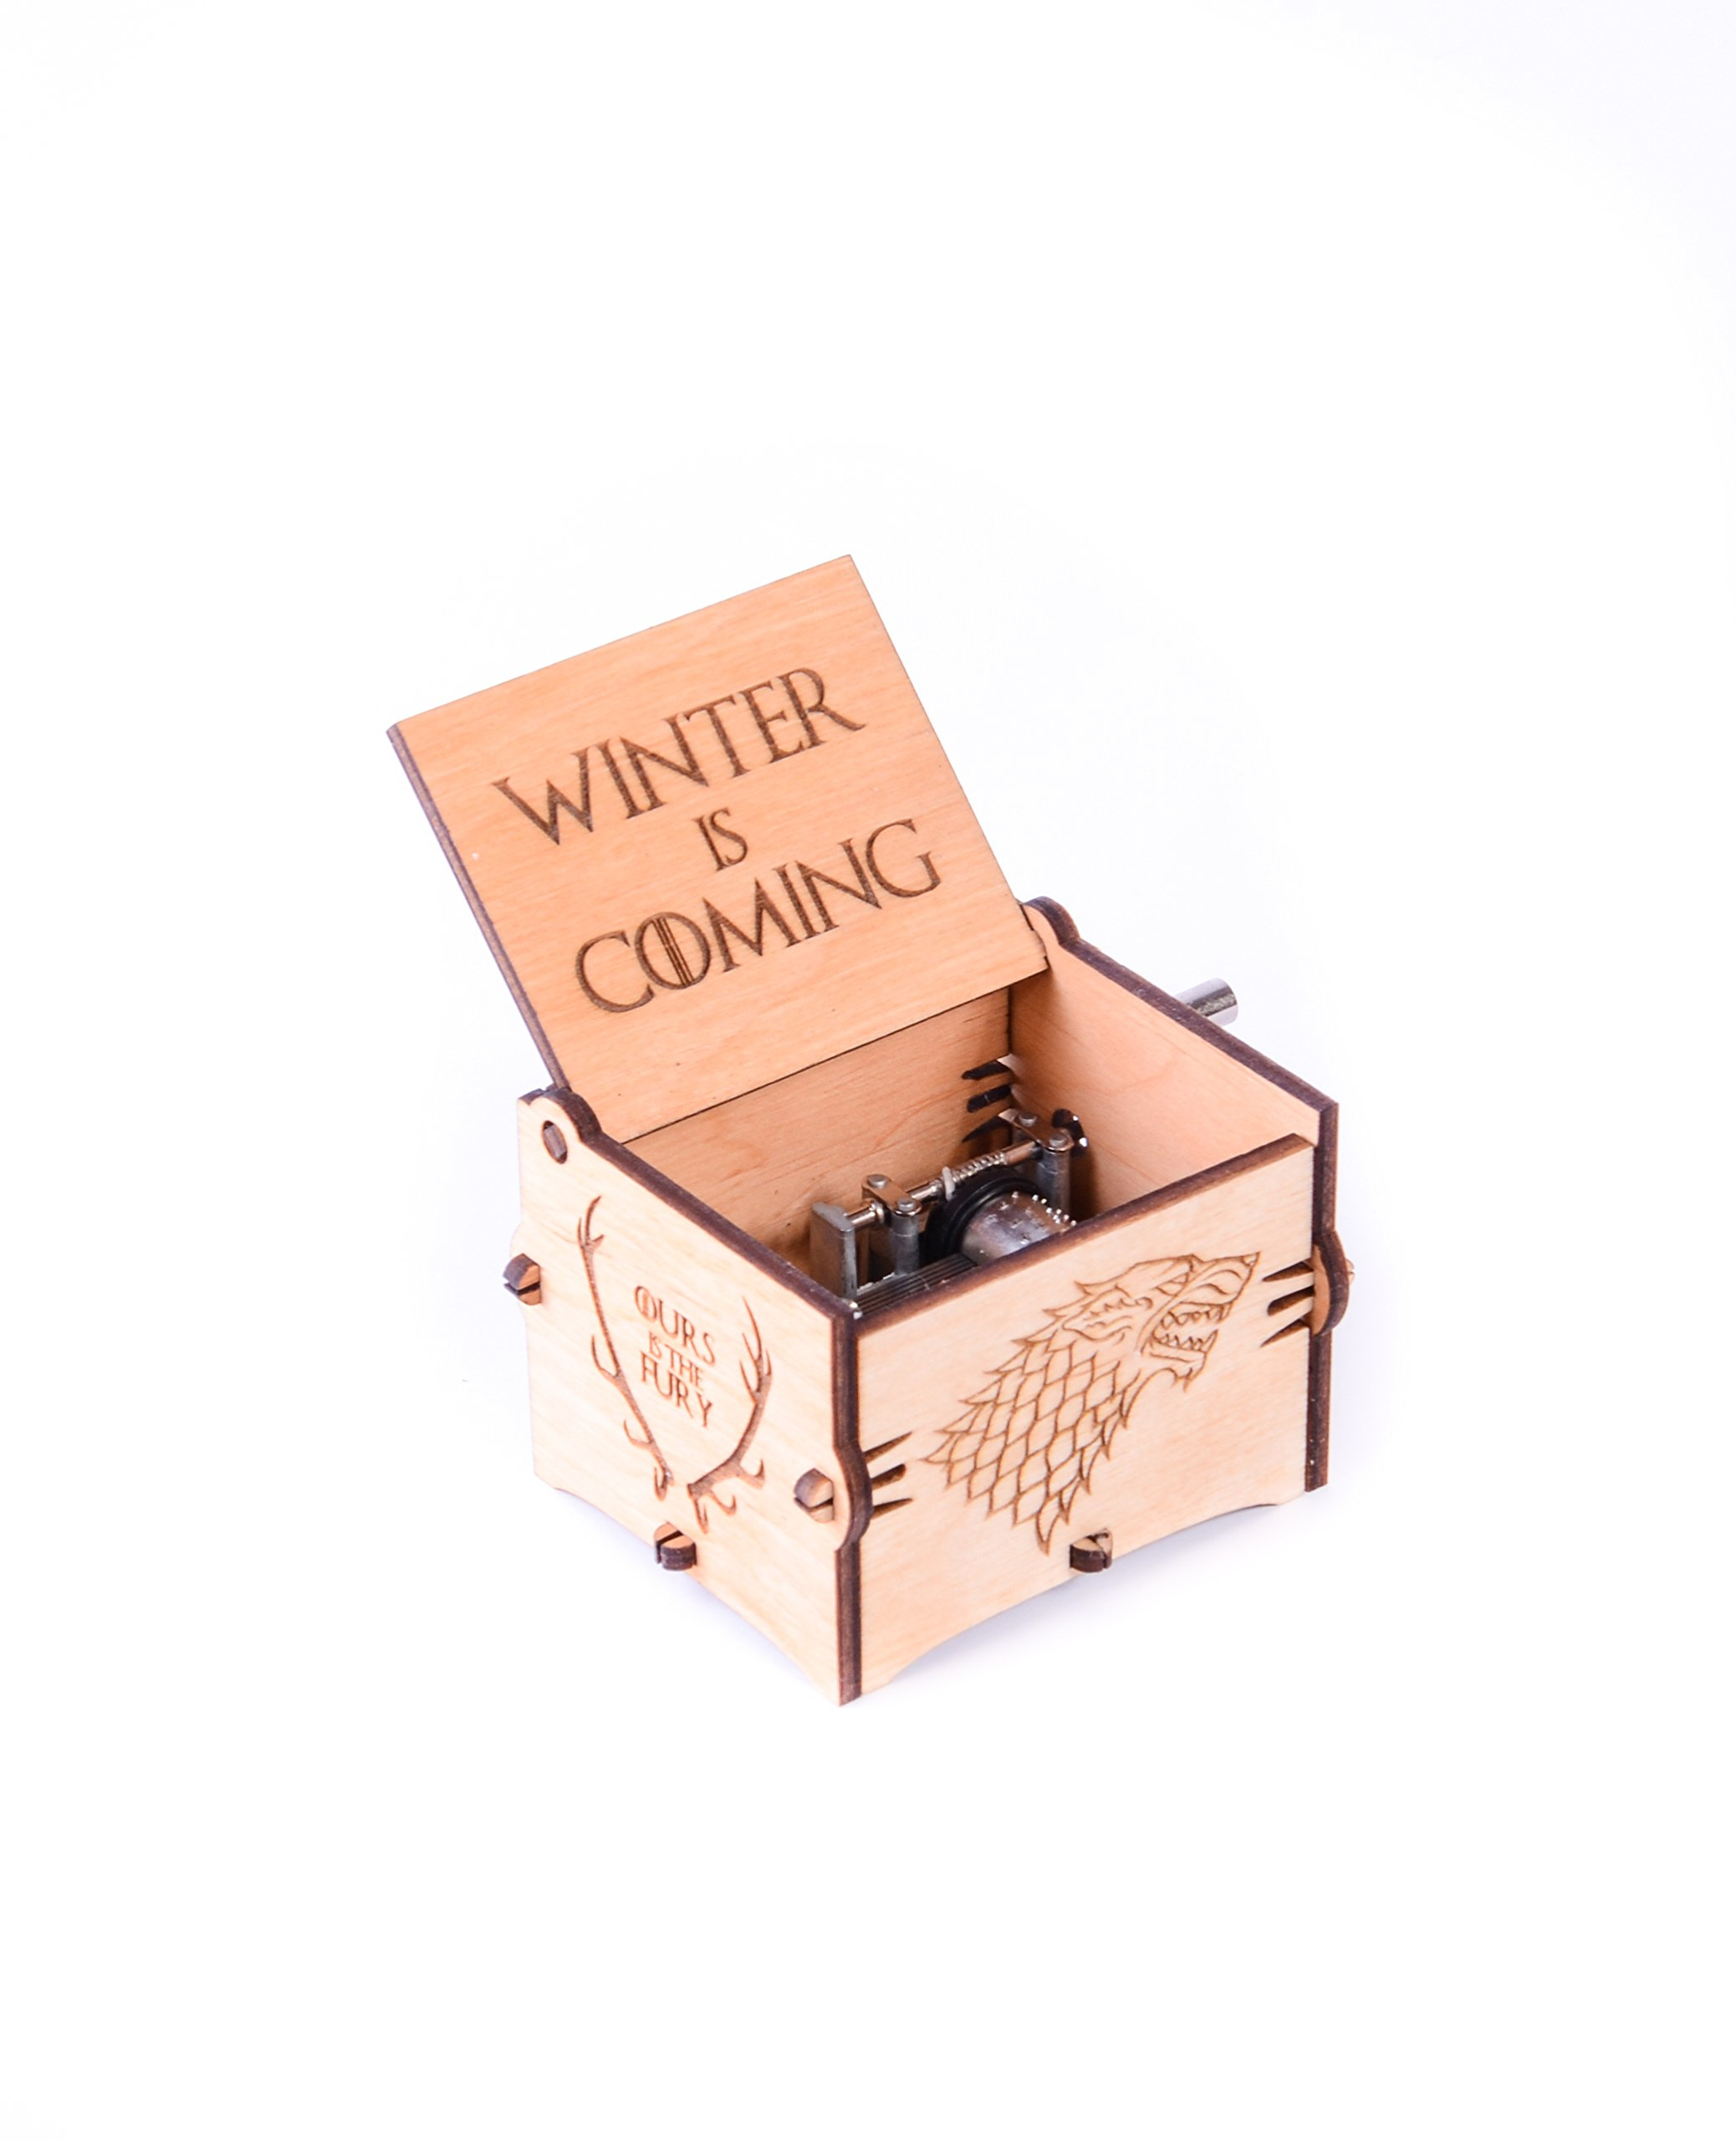 Wood Musical Box Music Box Main Theme Game of Thrones Game of Thrones Gift